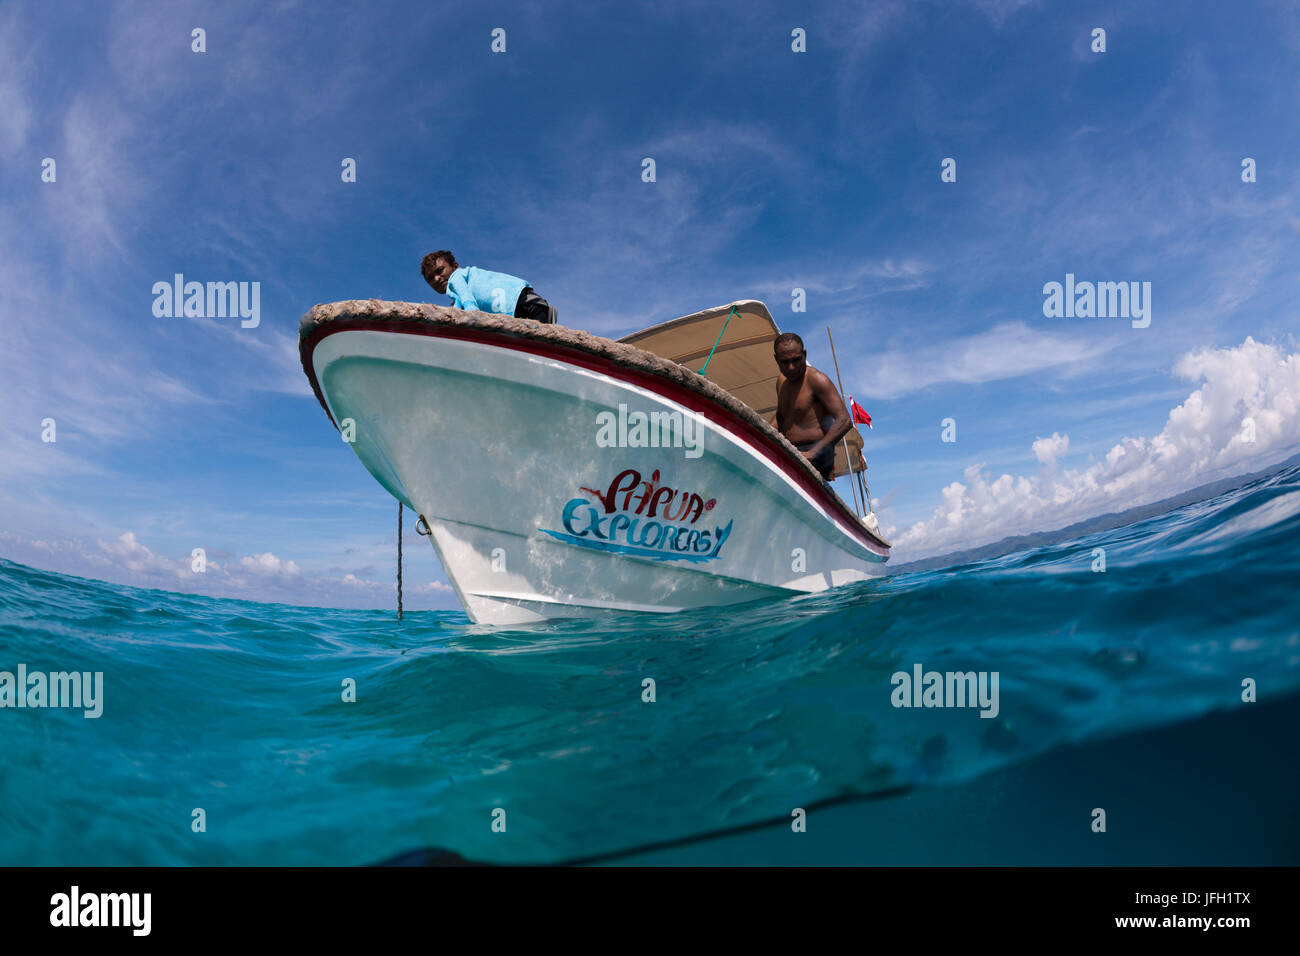 Submarine Papua Explorers Resort, Gam, Raja Ampat, west Papua, Indonesia - Stock Image